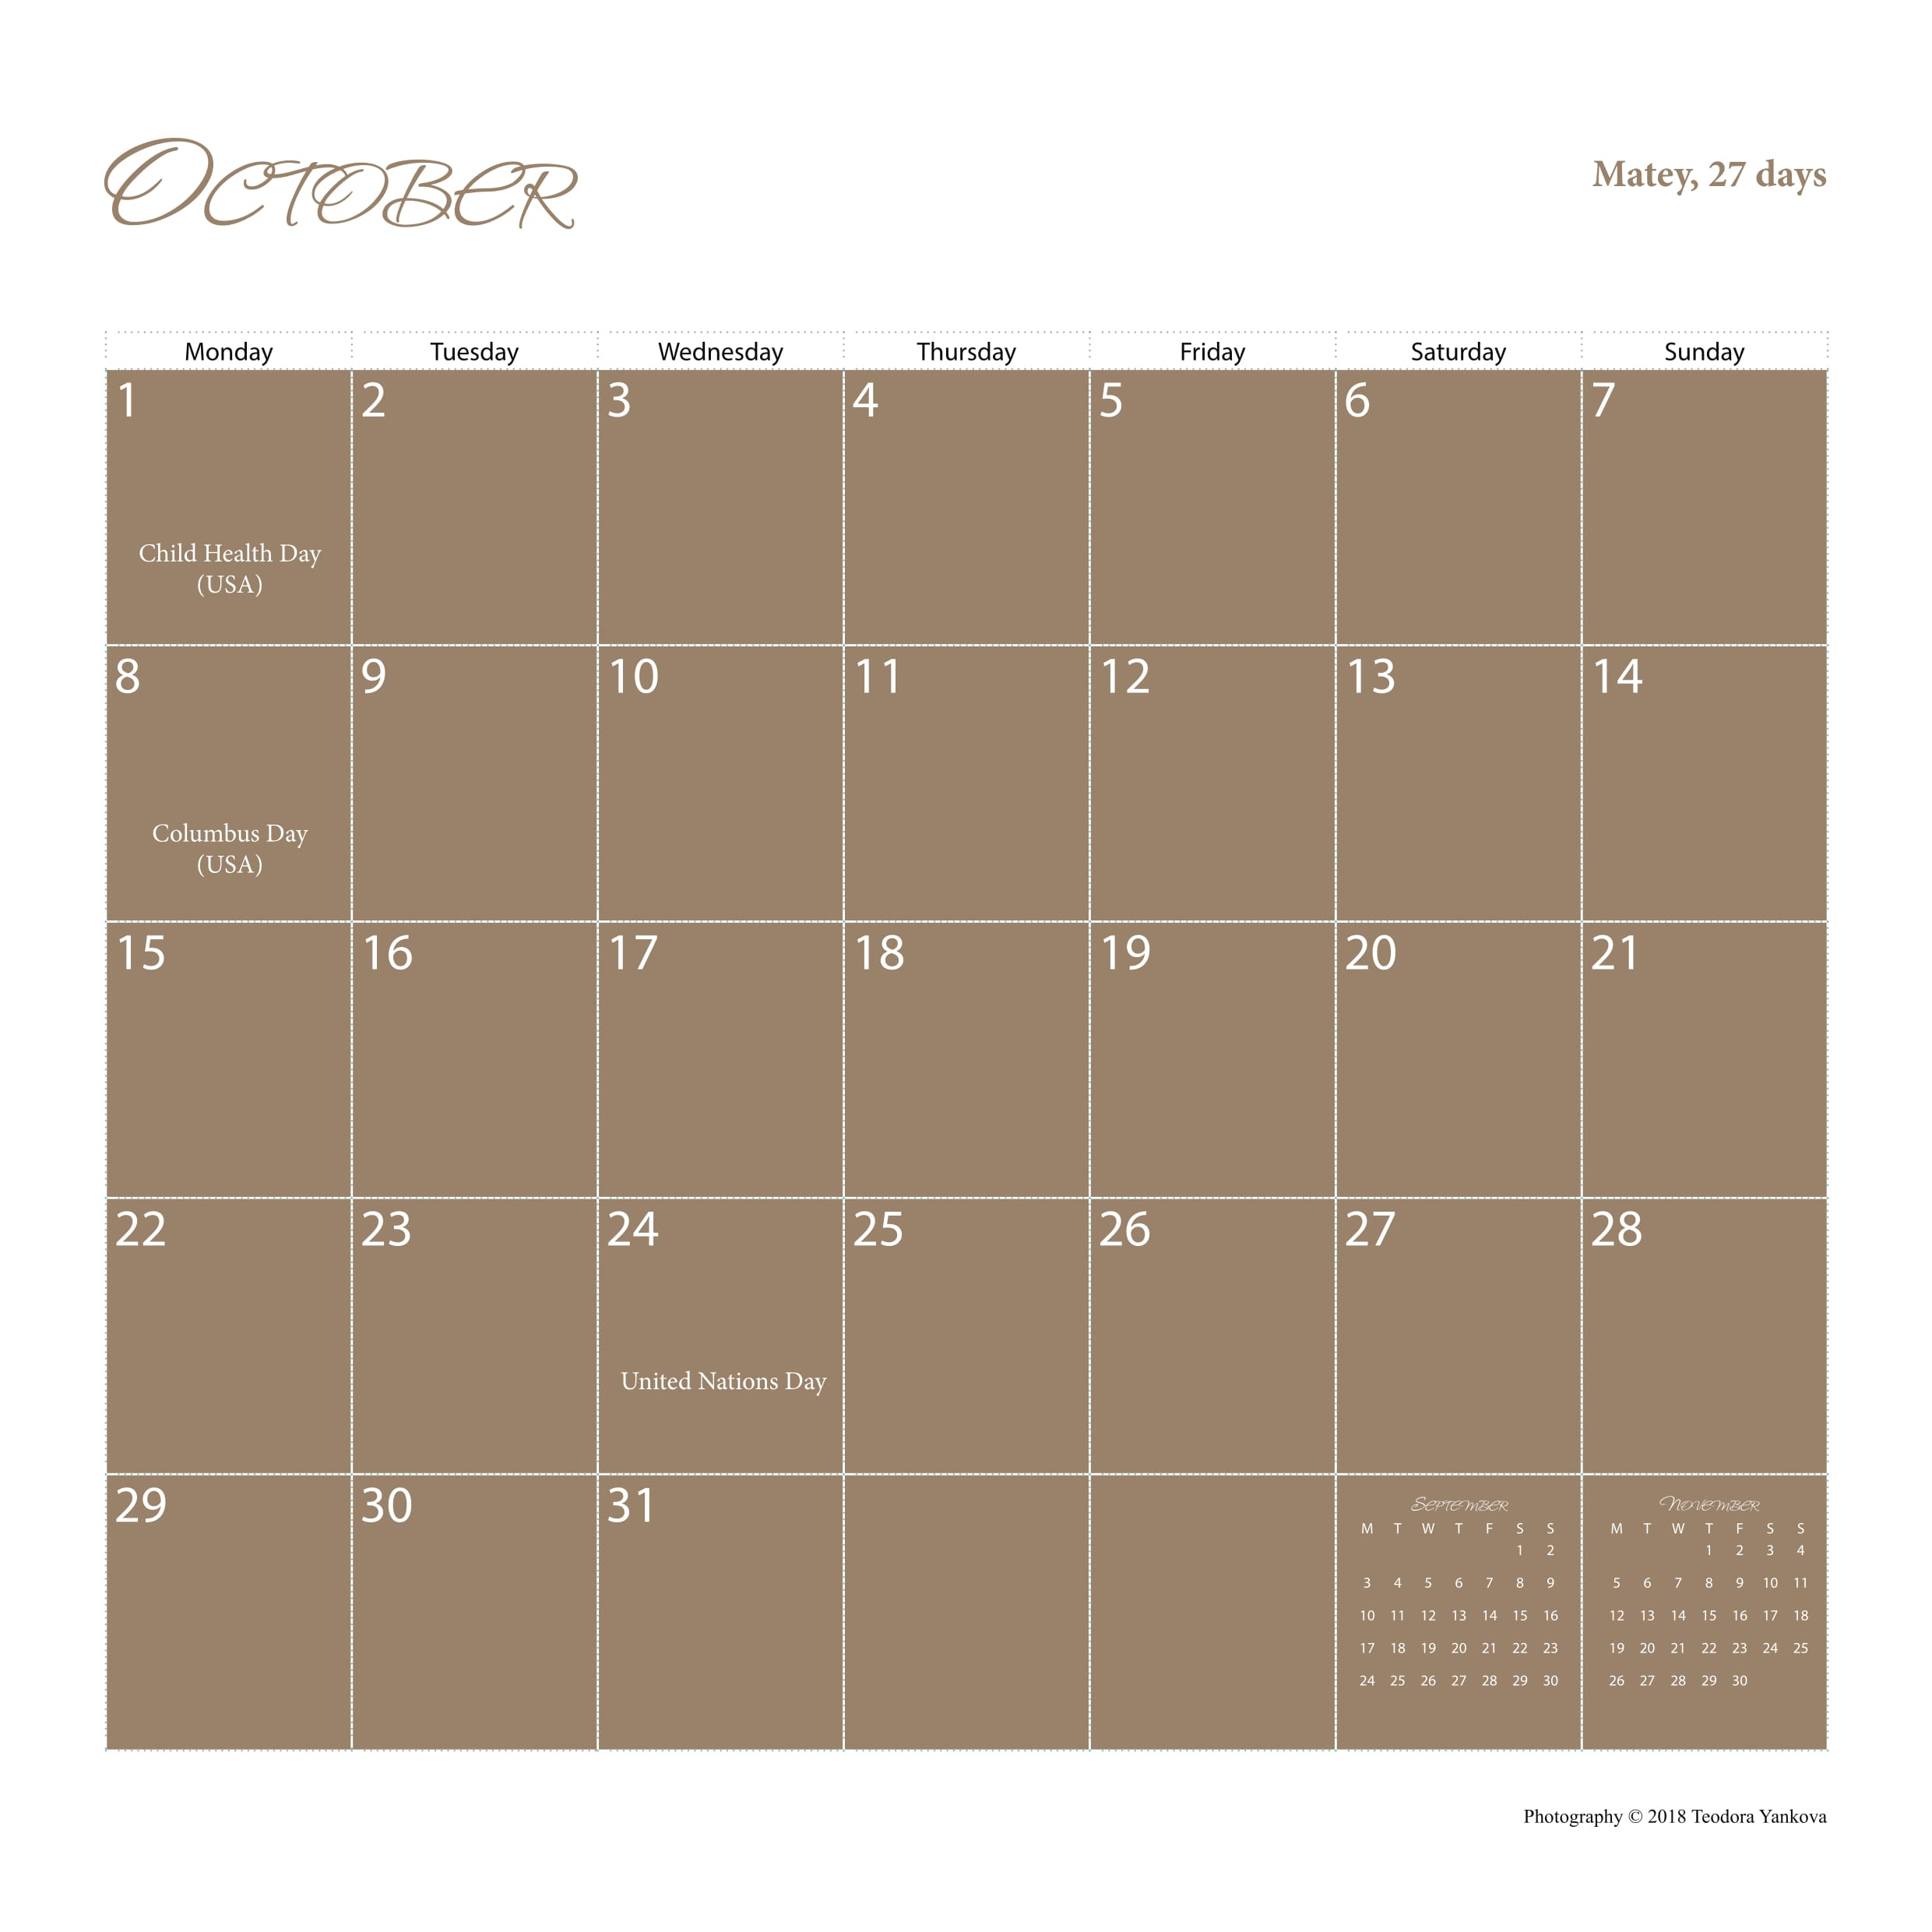 Pearl_in_the_Shell_Calendar_2018-23